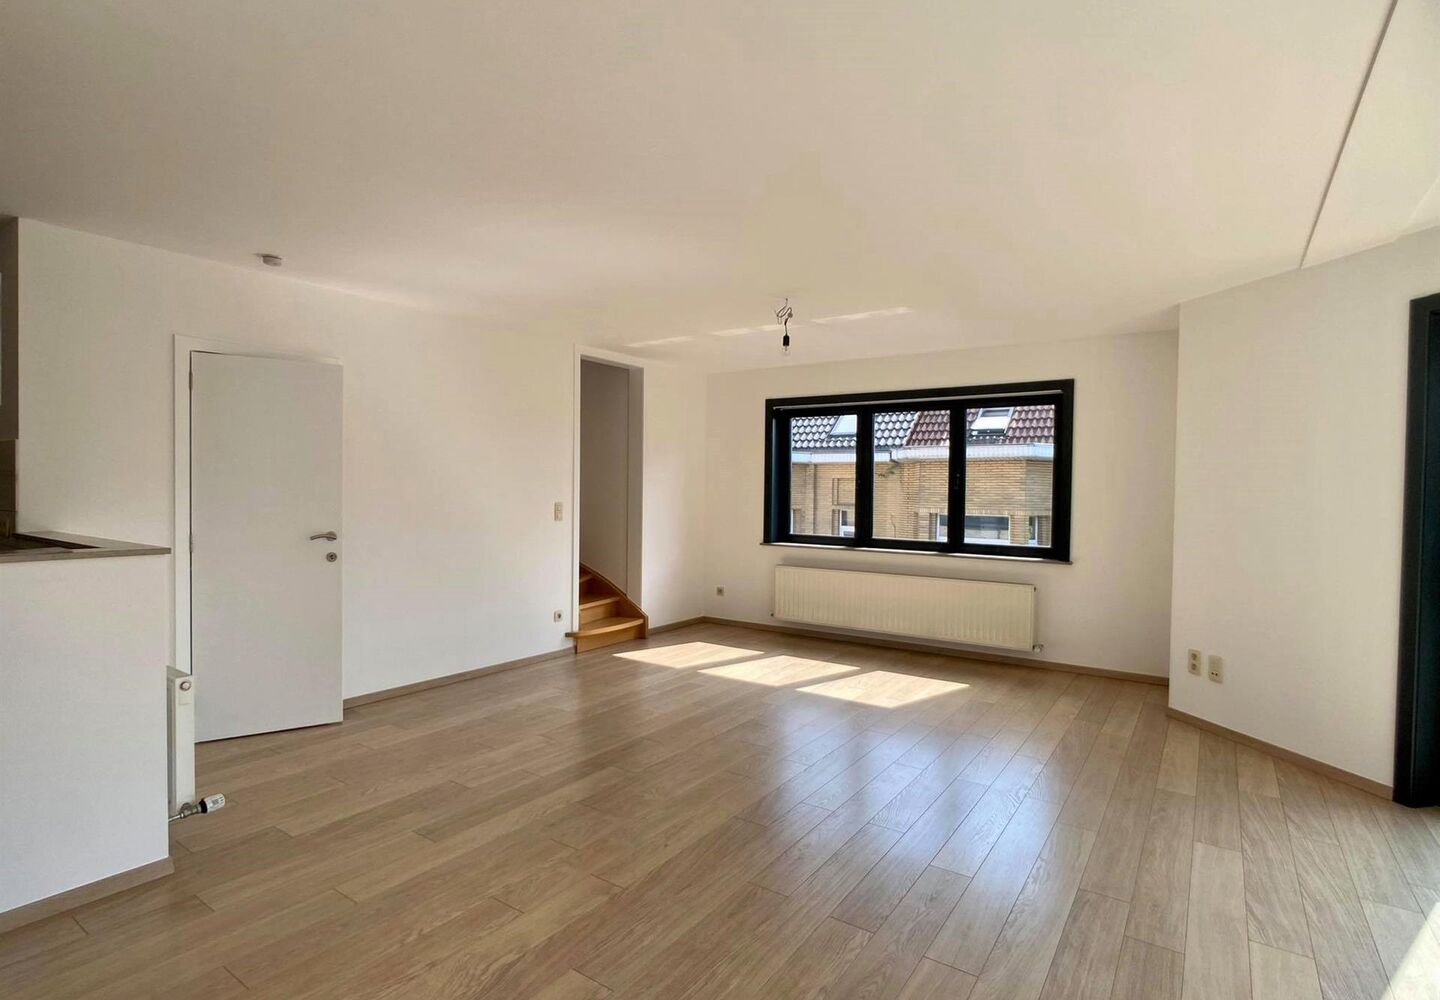 Duplex for rent in Evere